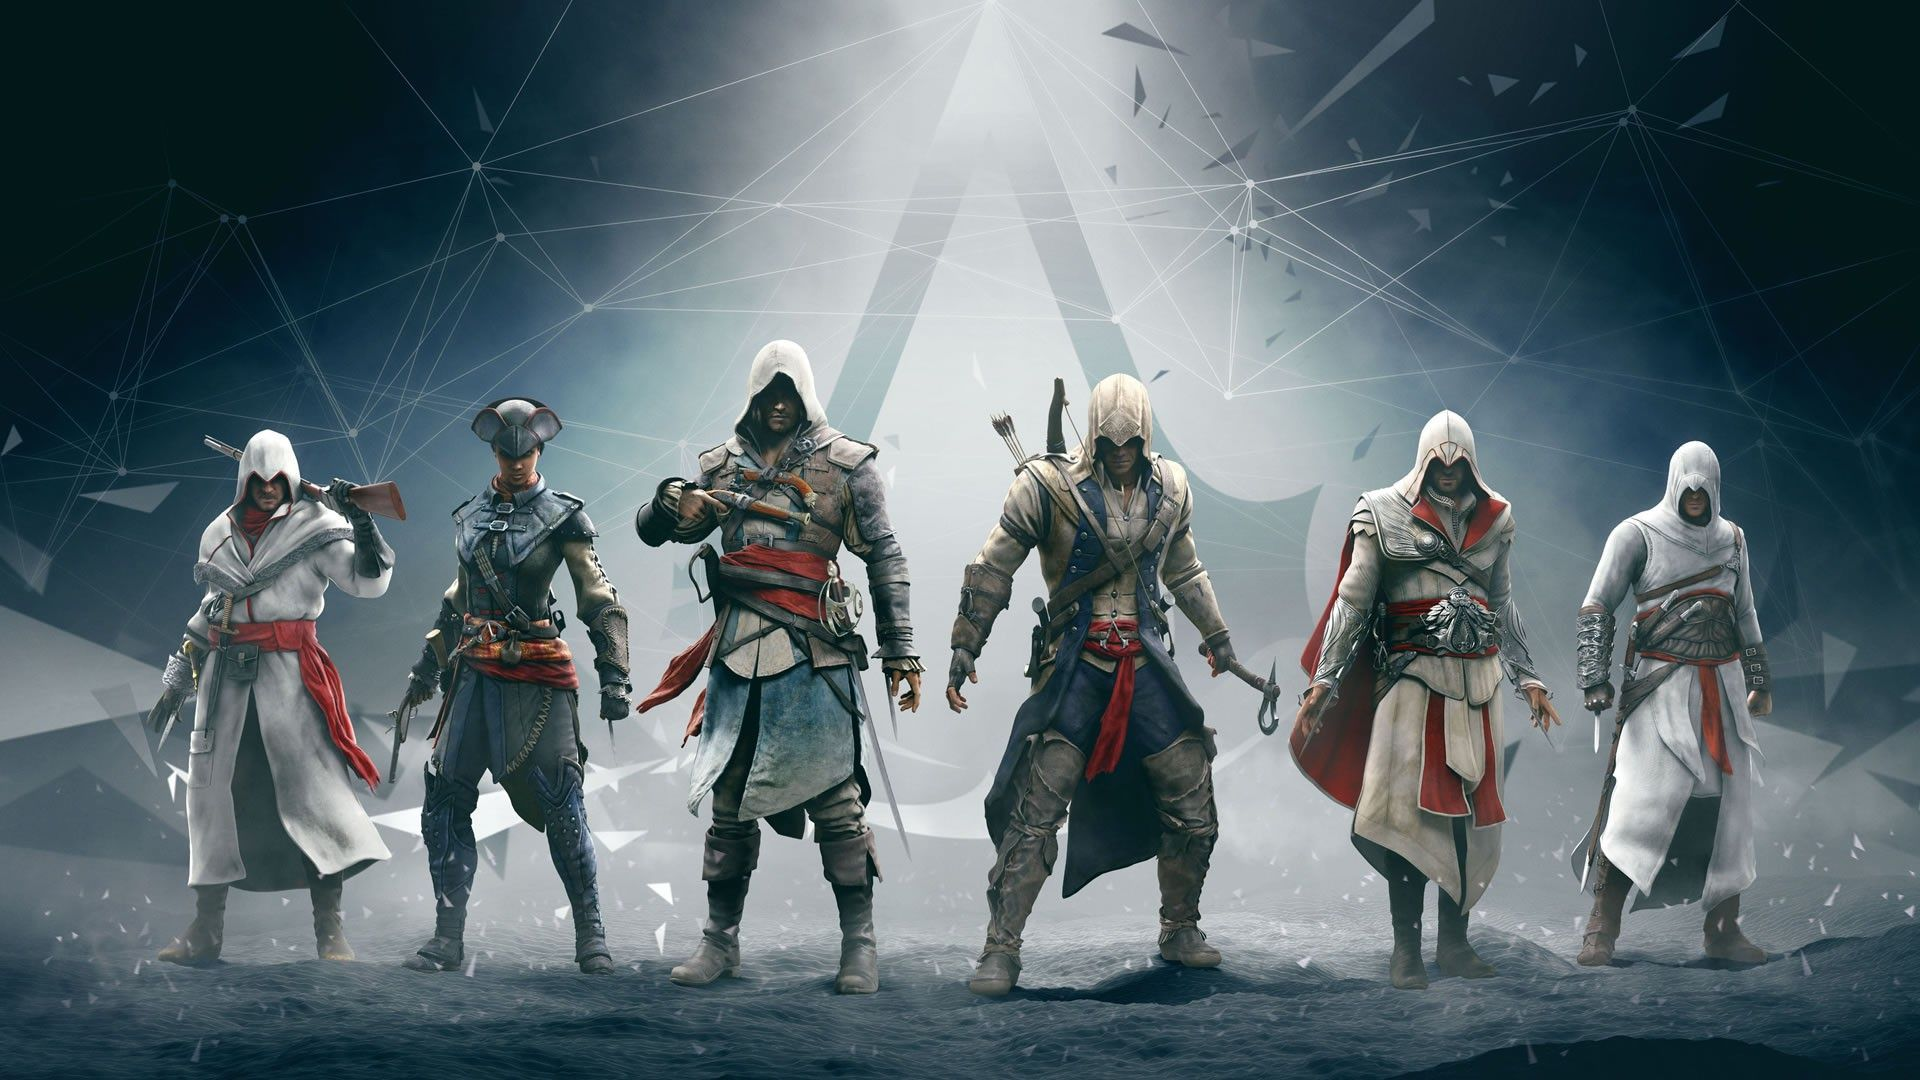 Download Assassin S Creed Unity 2014 Wide Wallpapers Images, Photos, Reviews